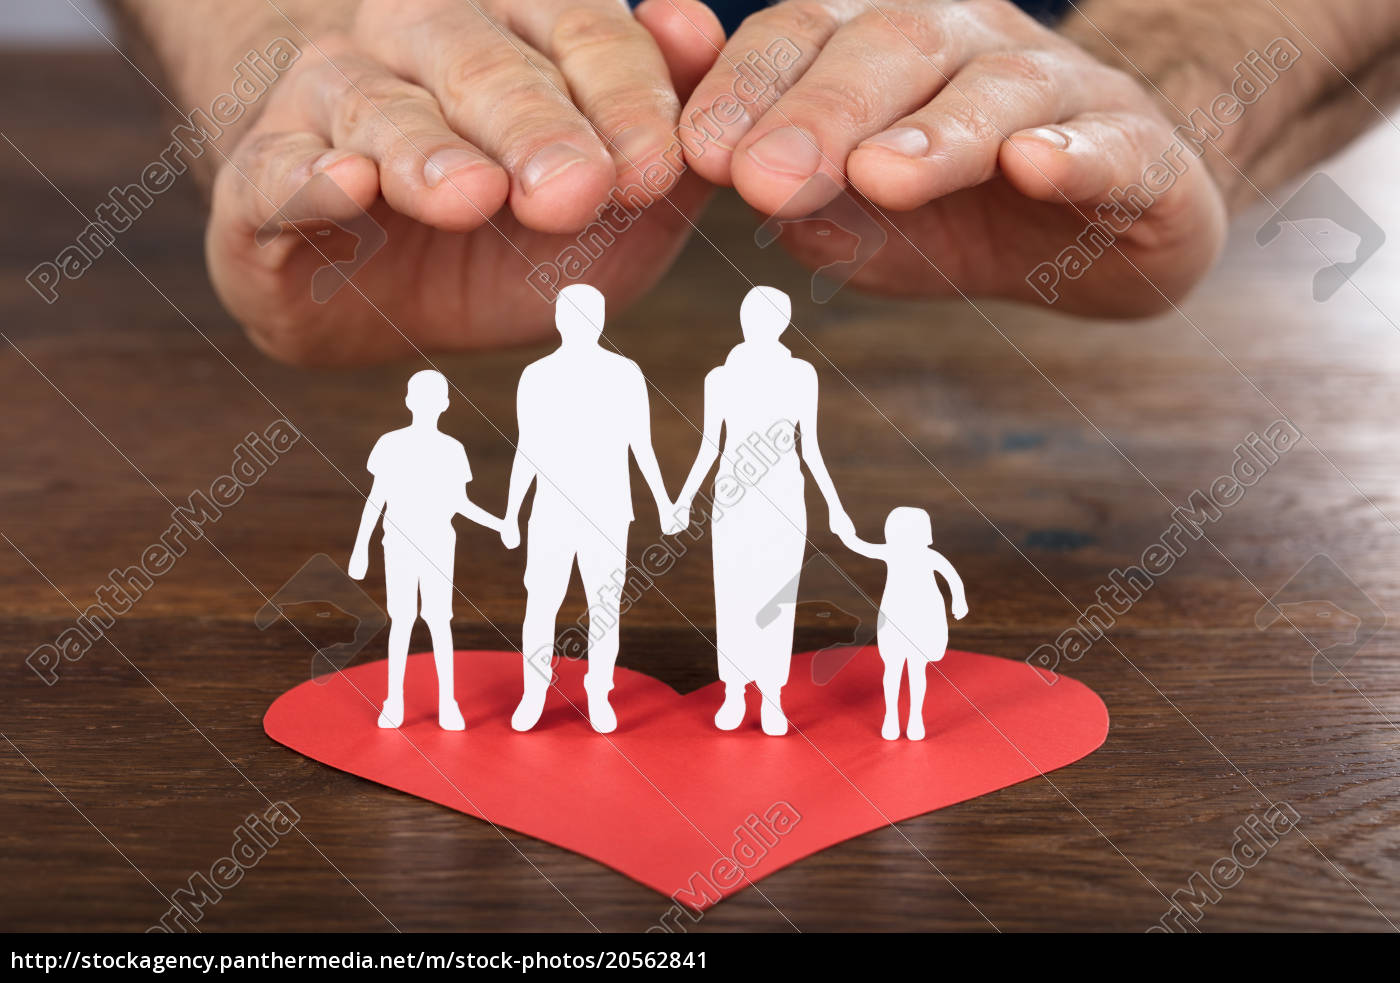 person, hand, protecting, family, paper, cut - 20562841